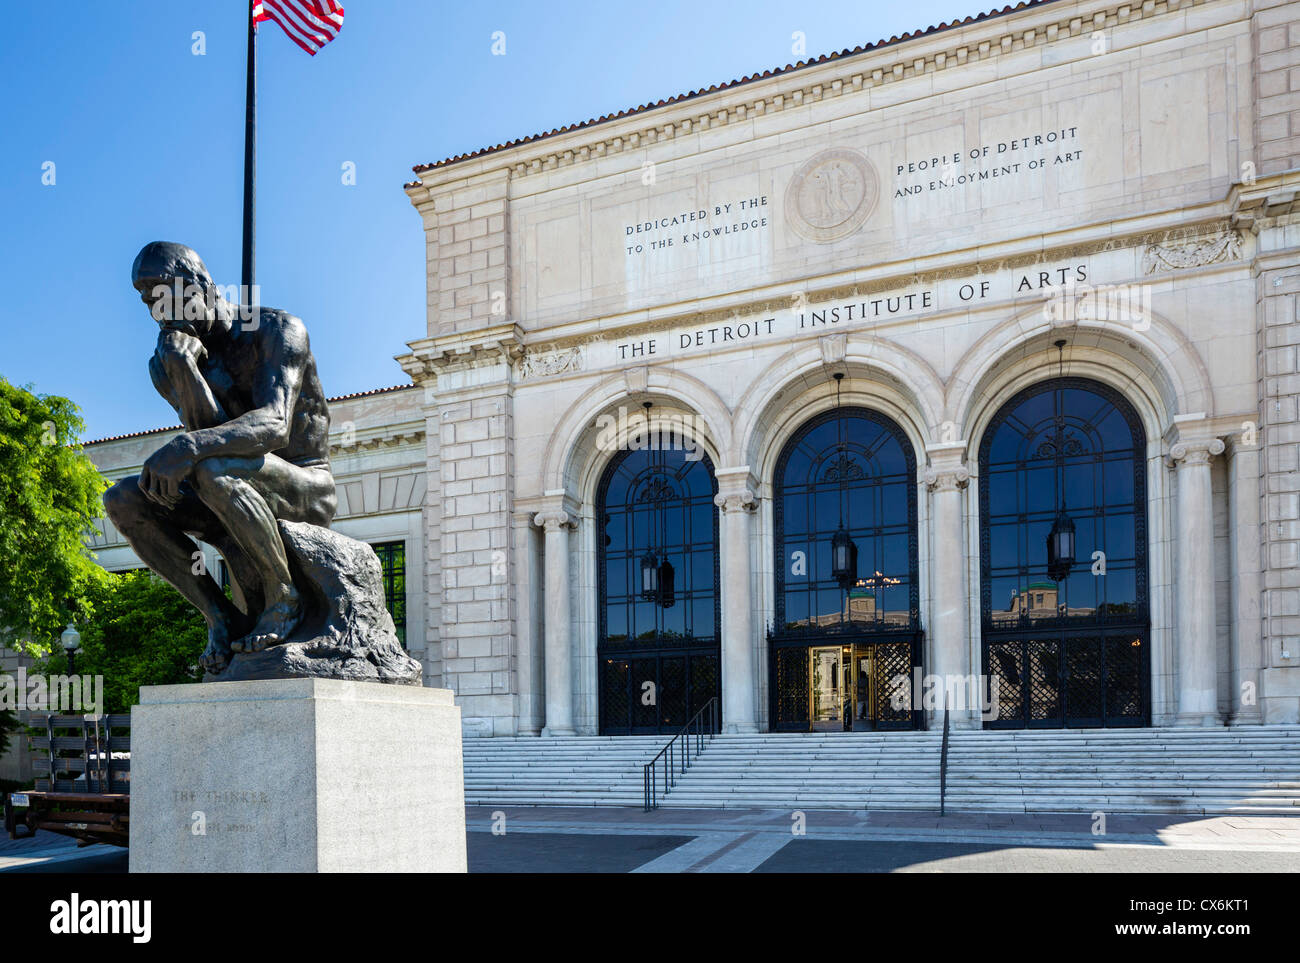 Rodin's sculpture 'The Thinker' in front of the Detroit Institute of Arts, Detroit Cultural Center, - Stock Image